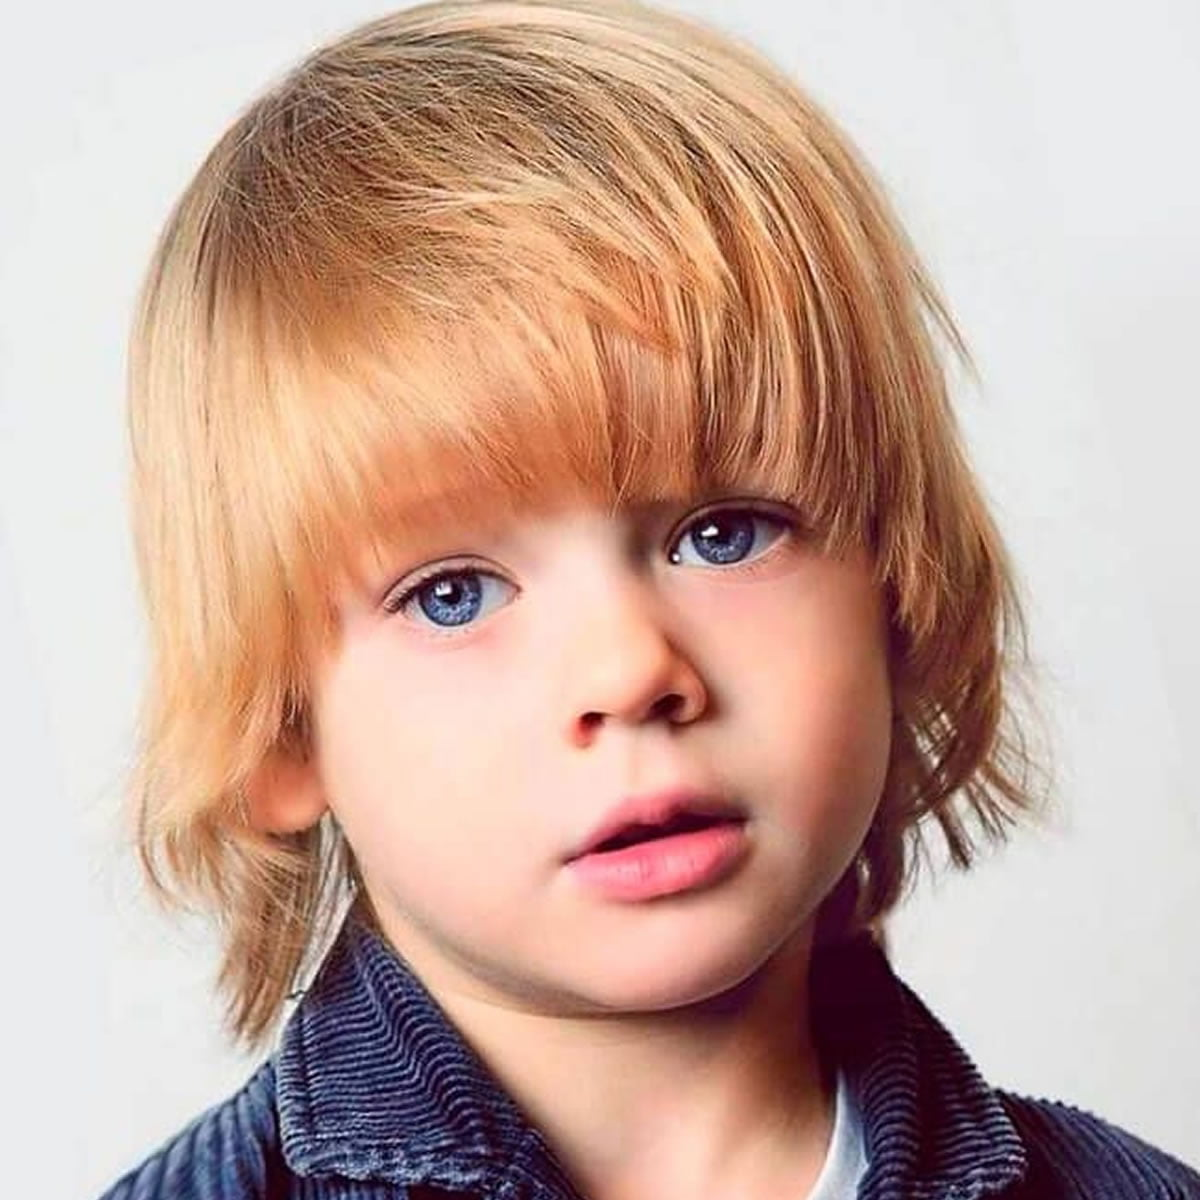 Haircuts For Little Boys 2018 2019 Hairstyles